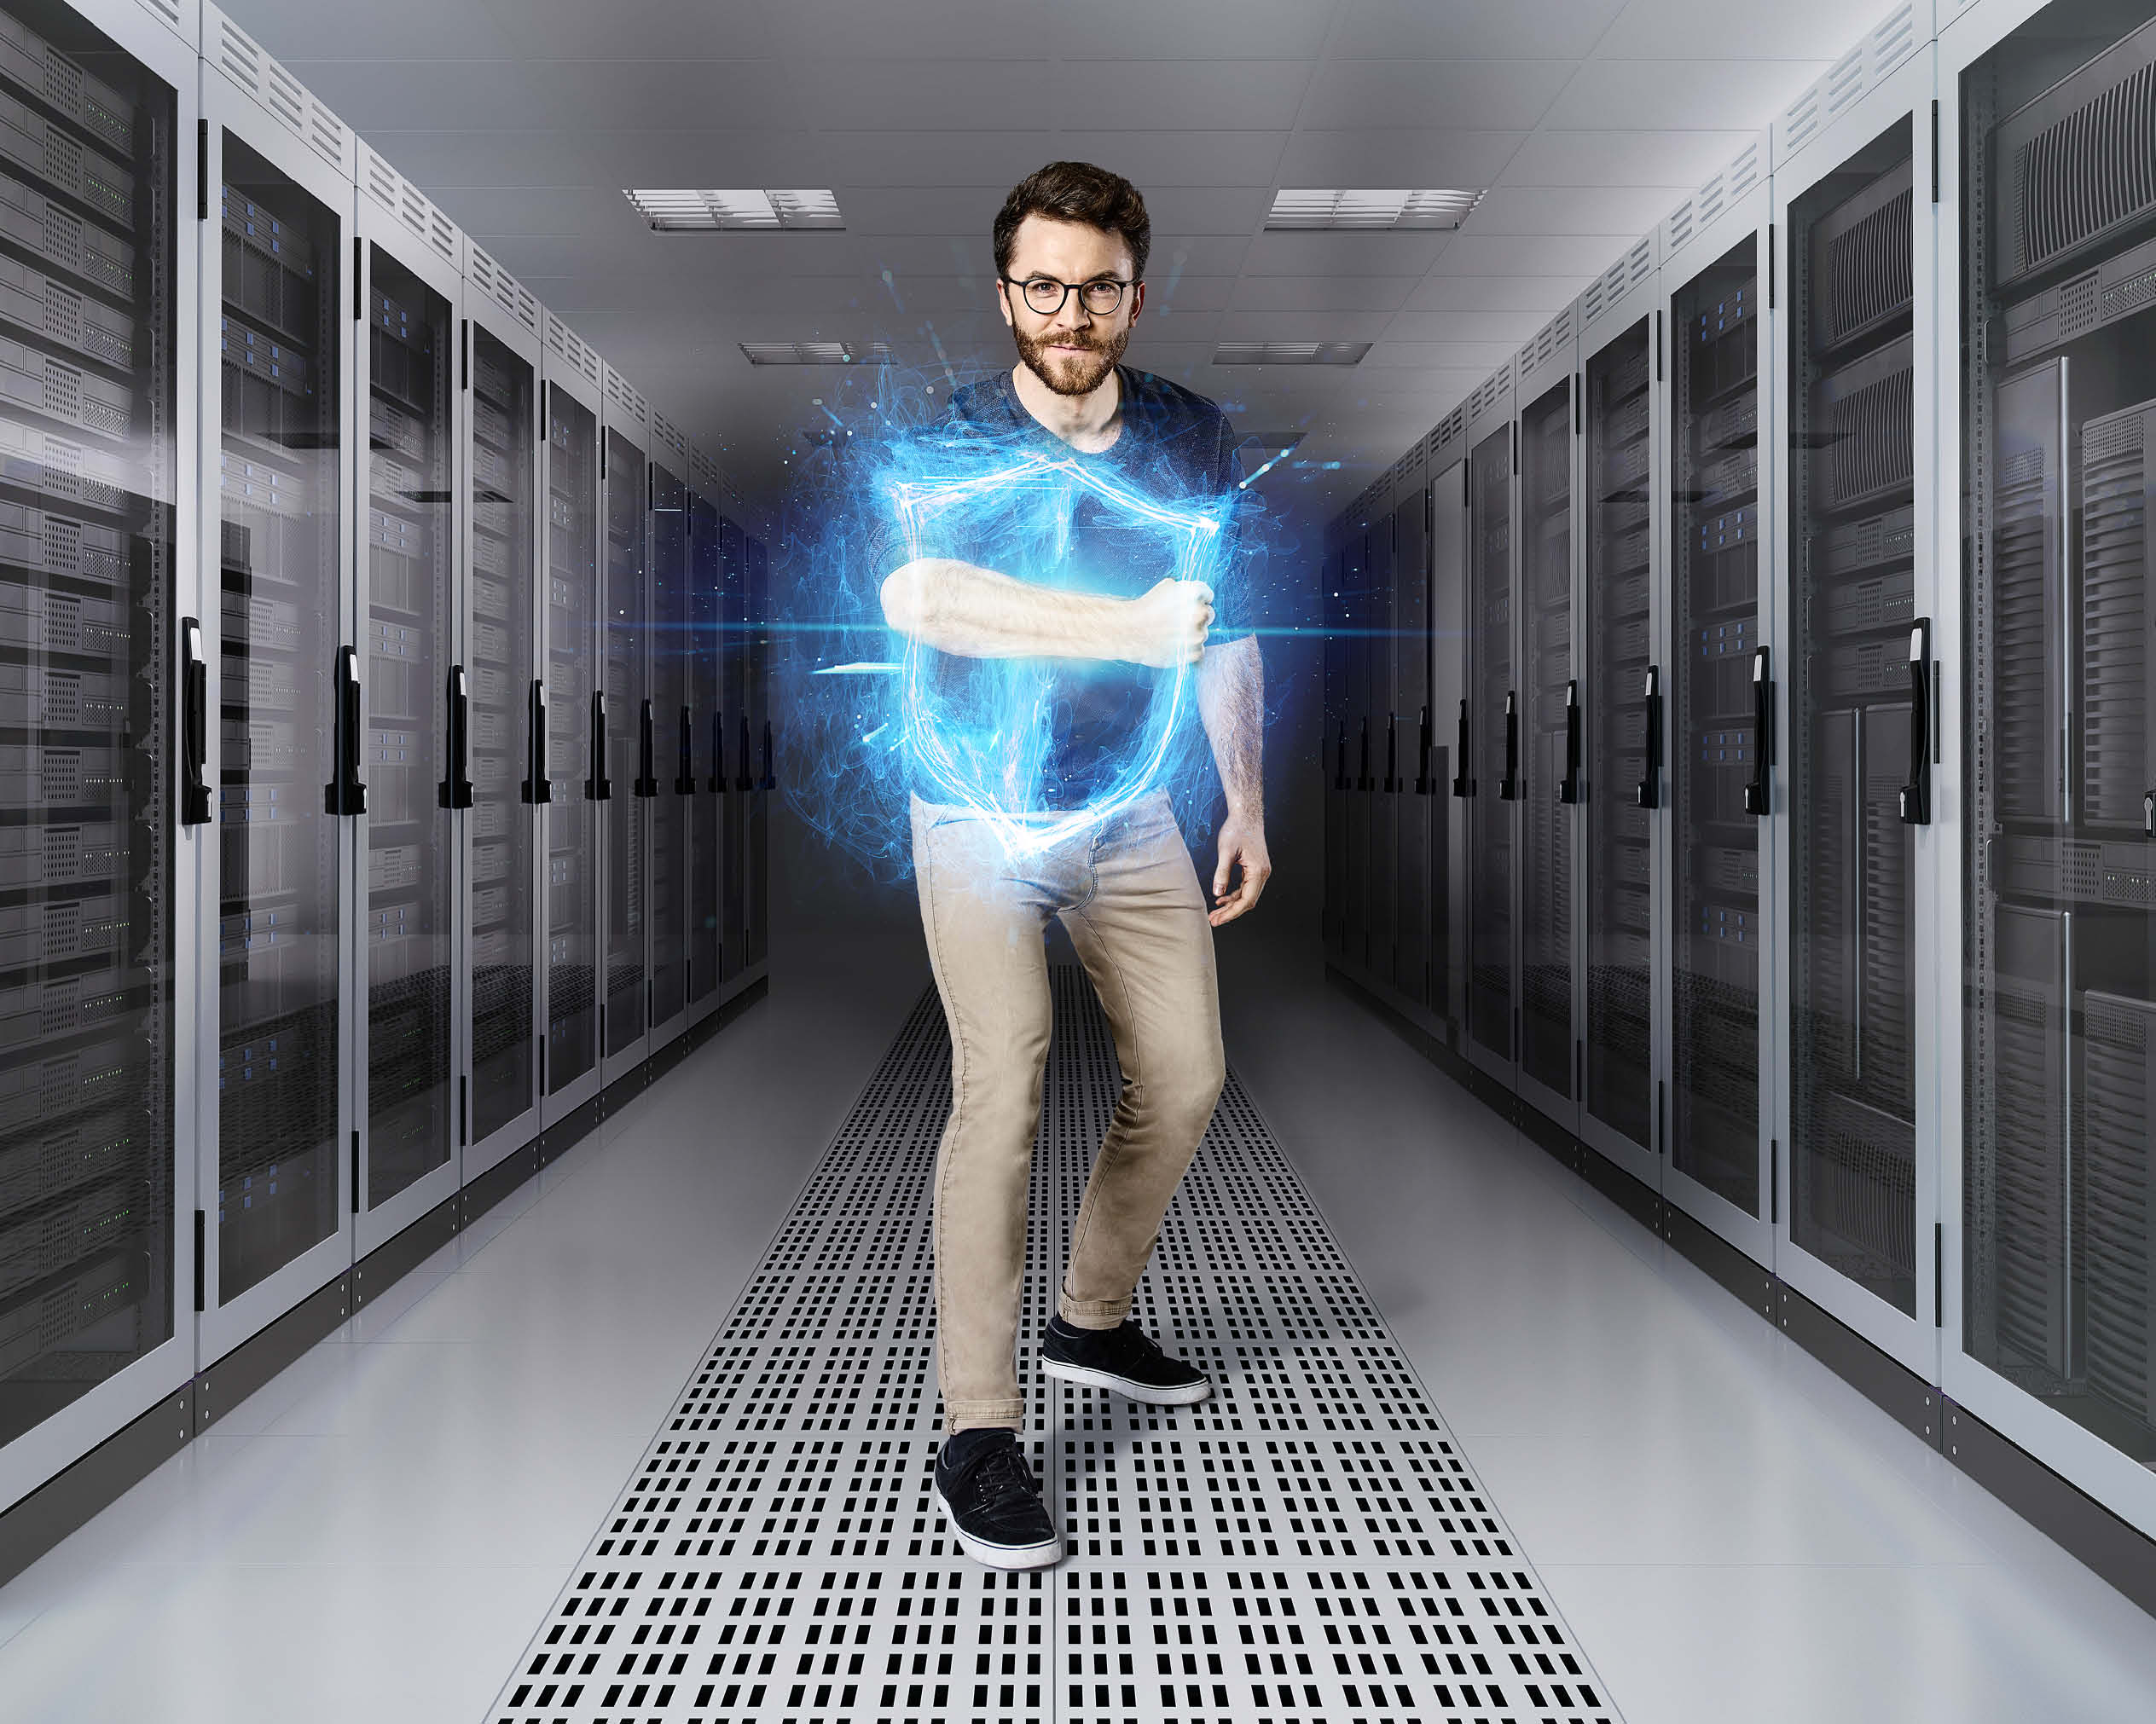 itsa 365: Man in data center with digital protective shield